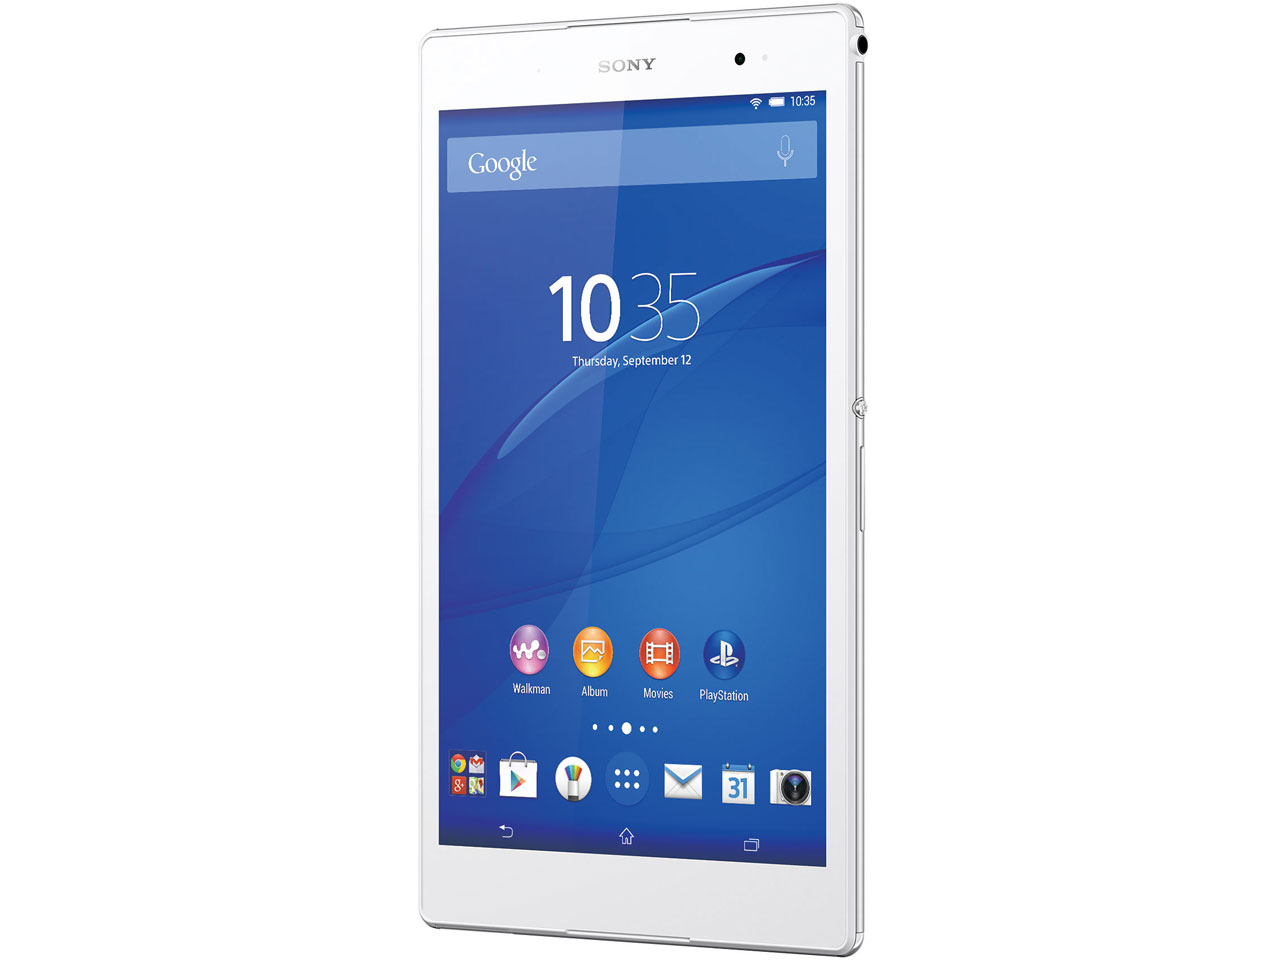 Xperia Z3 Tablet Compact Wi-Fiモデル 32GB SGP612JP/W [ホワイト] の製品画像